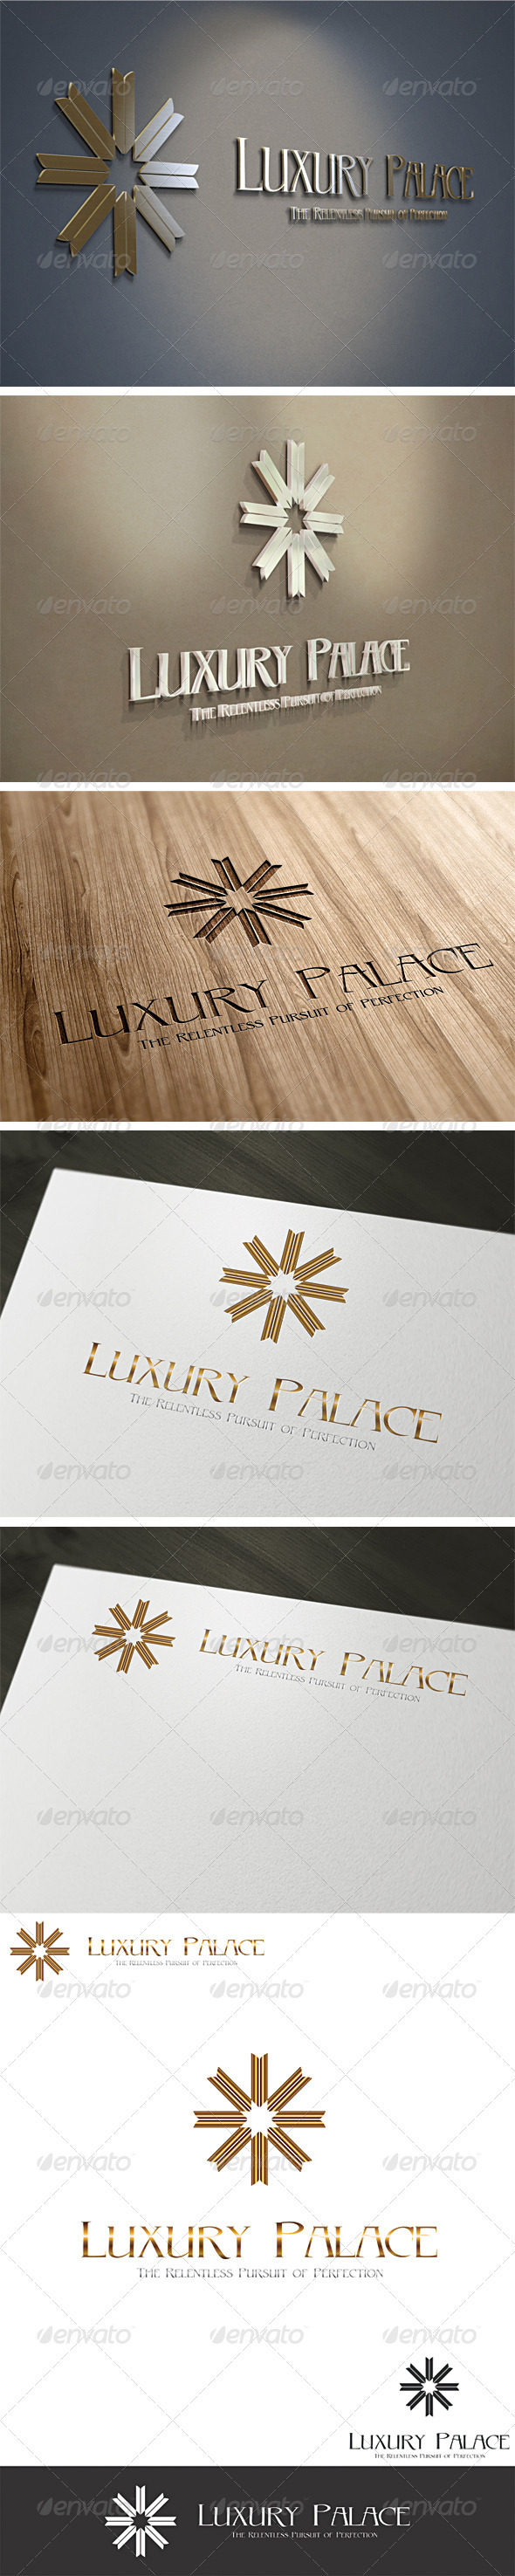 GraphicRiver 3D Luxury Hotels Logo Template V2 2514344